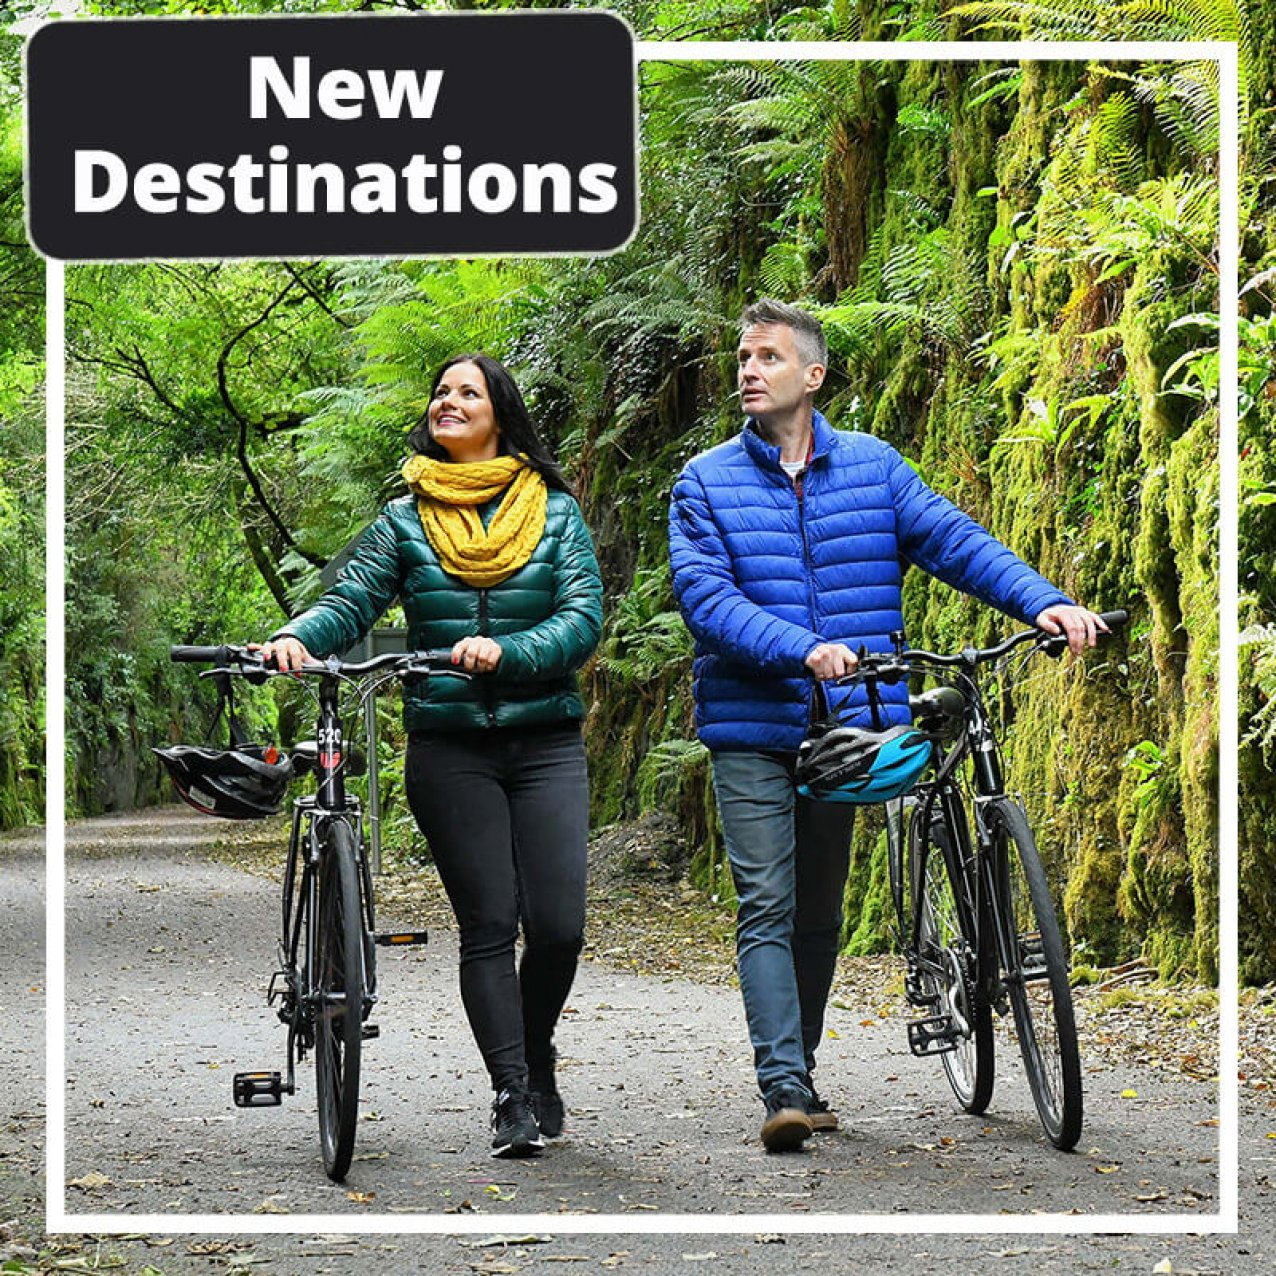 New destinations with two cyclists in Ireland